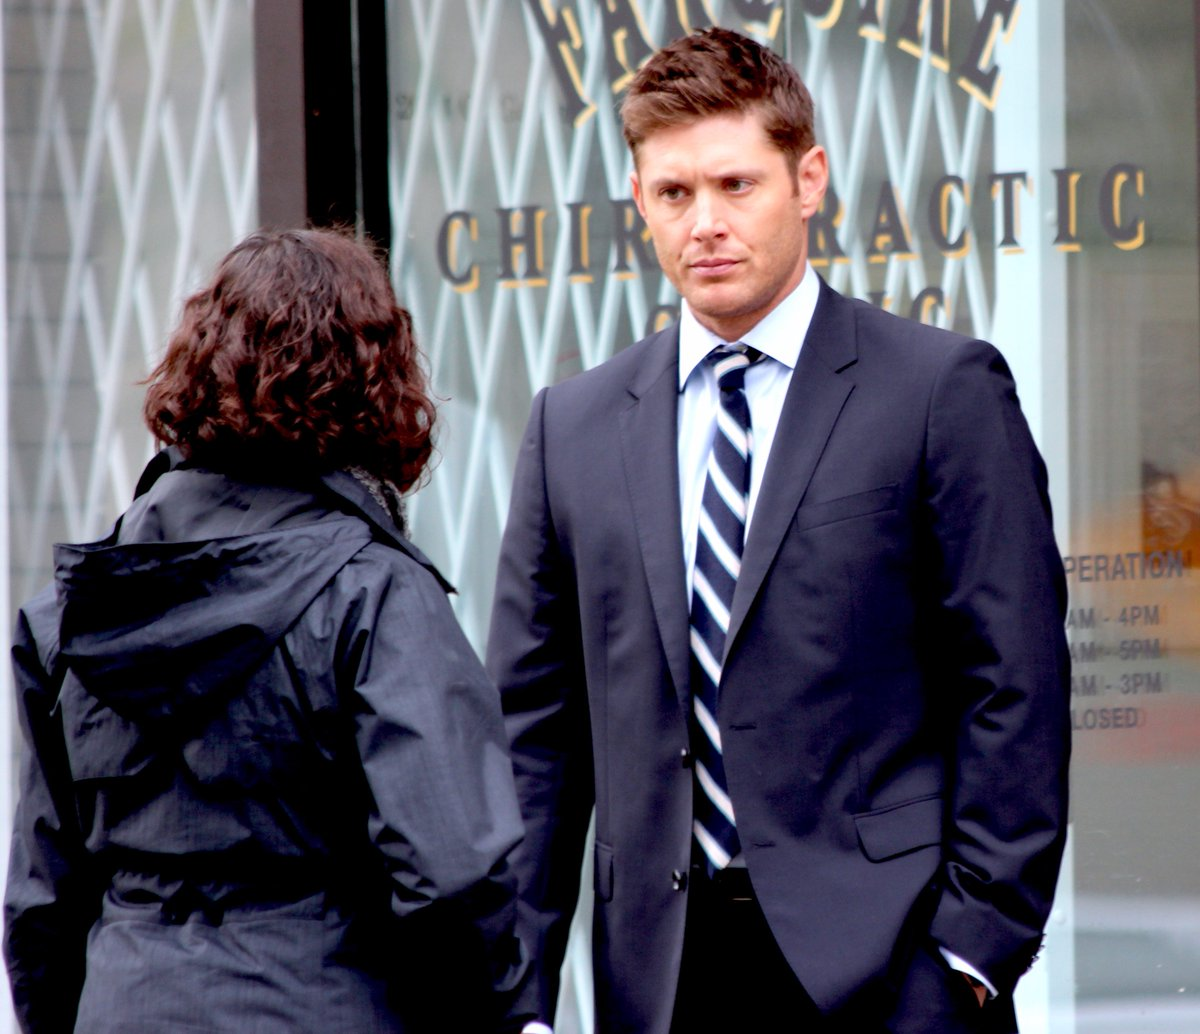 http://www.thewinchesterfamilybusiness.com/images/DiscussionPage/Season12/Episodes_1to5/CrUIENTVIAEgXPj.jpg